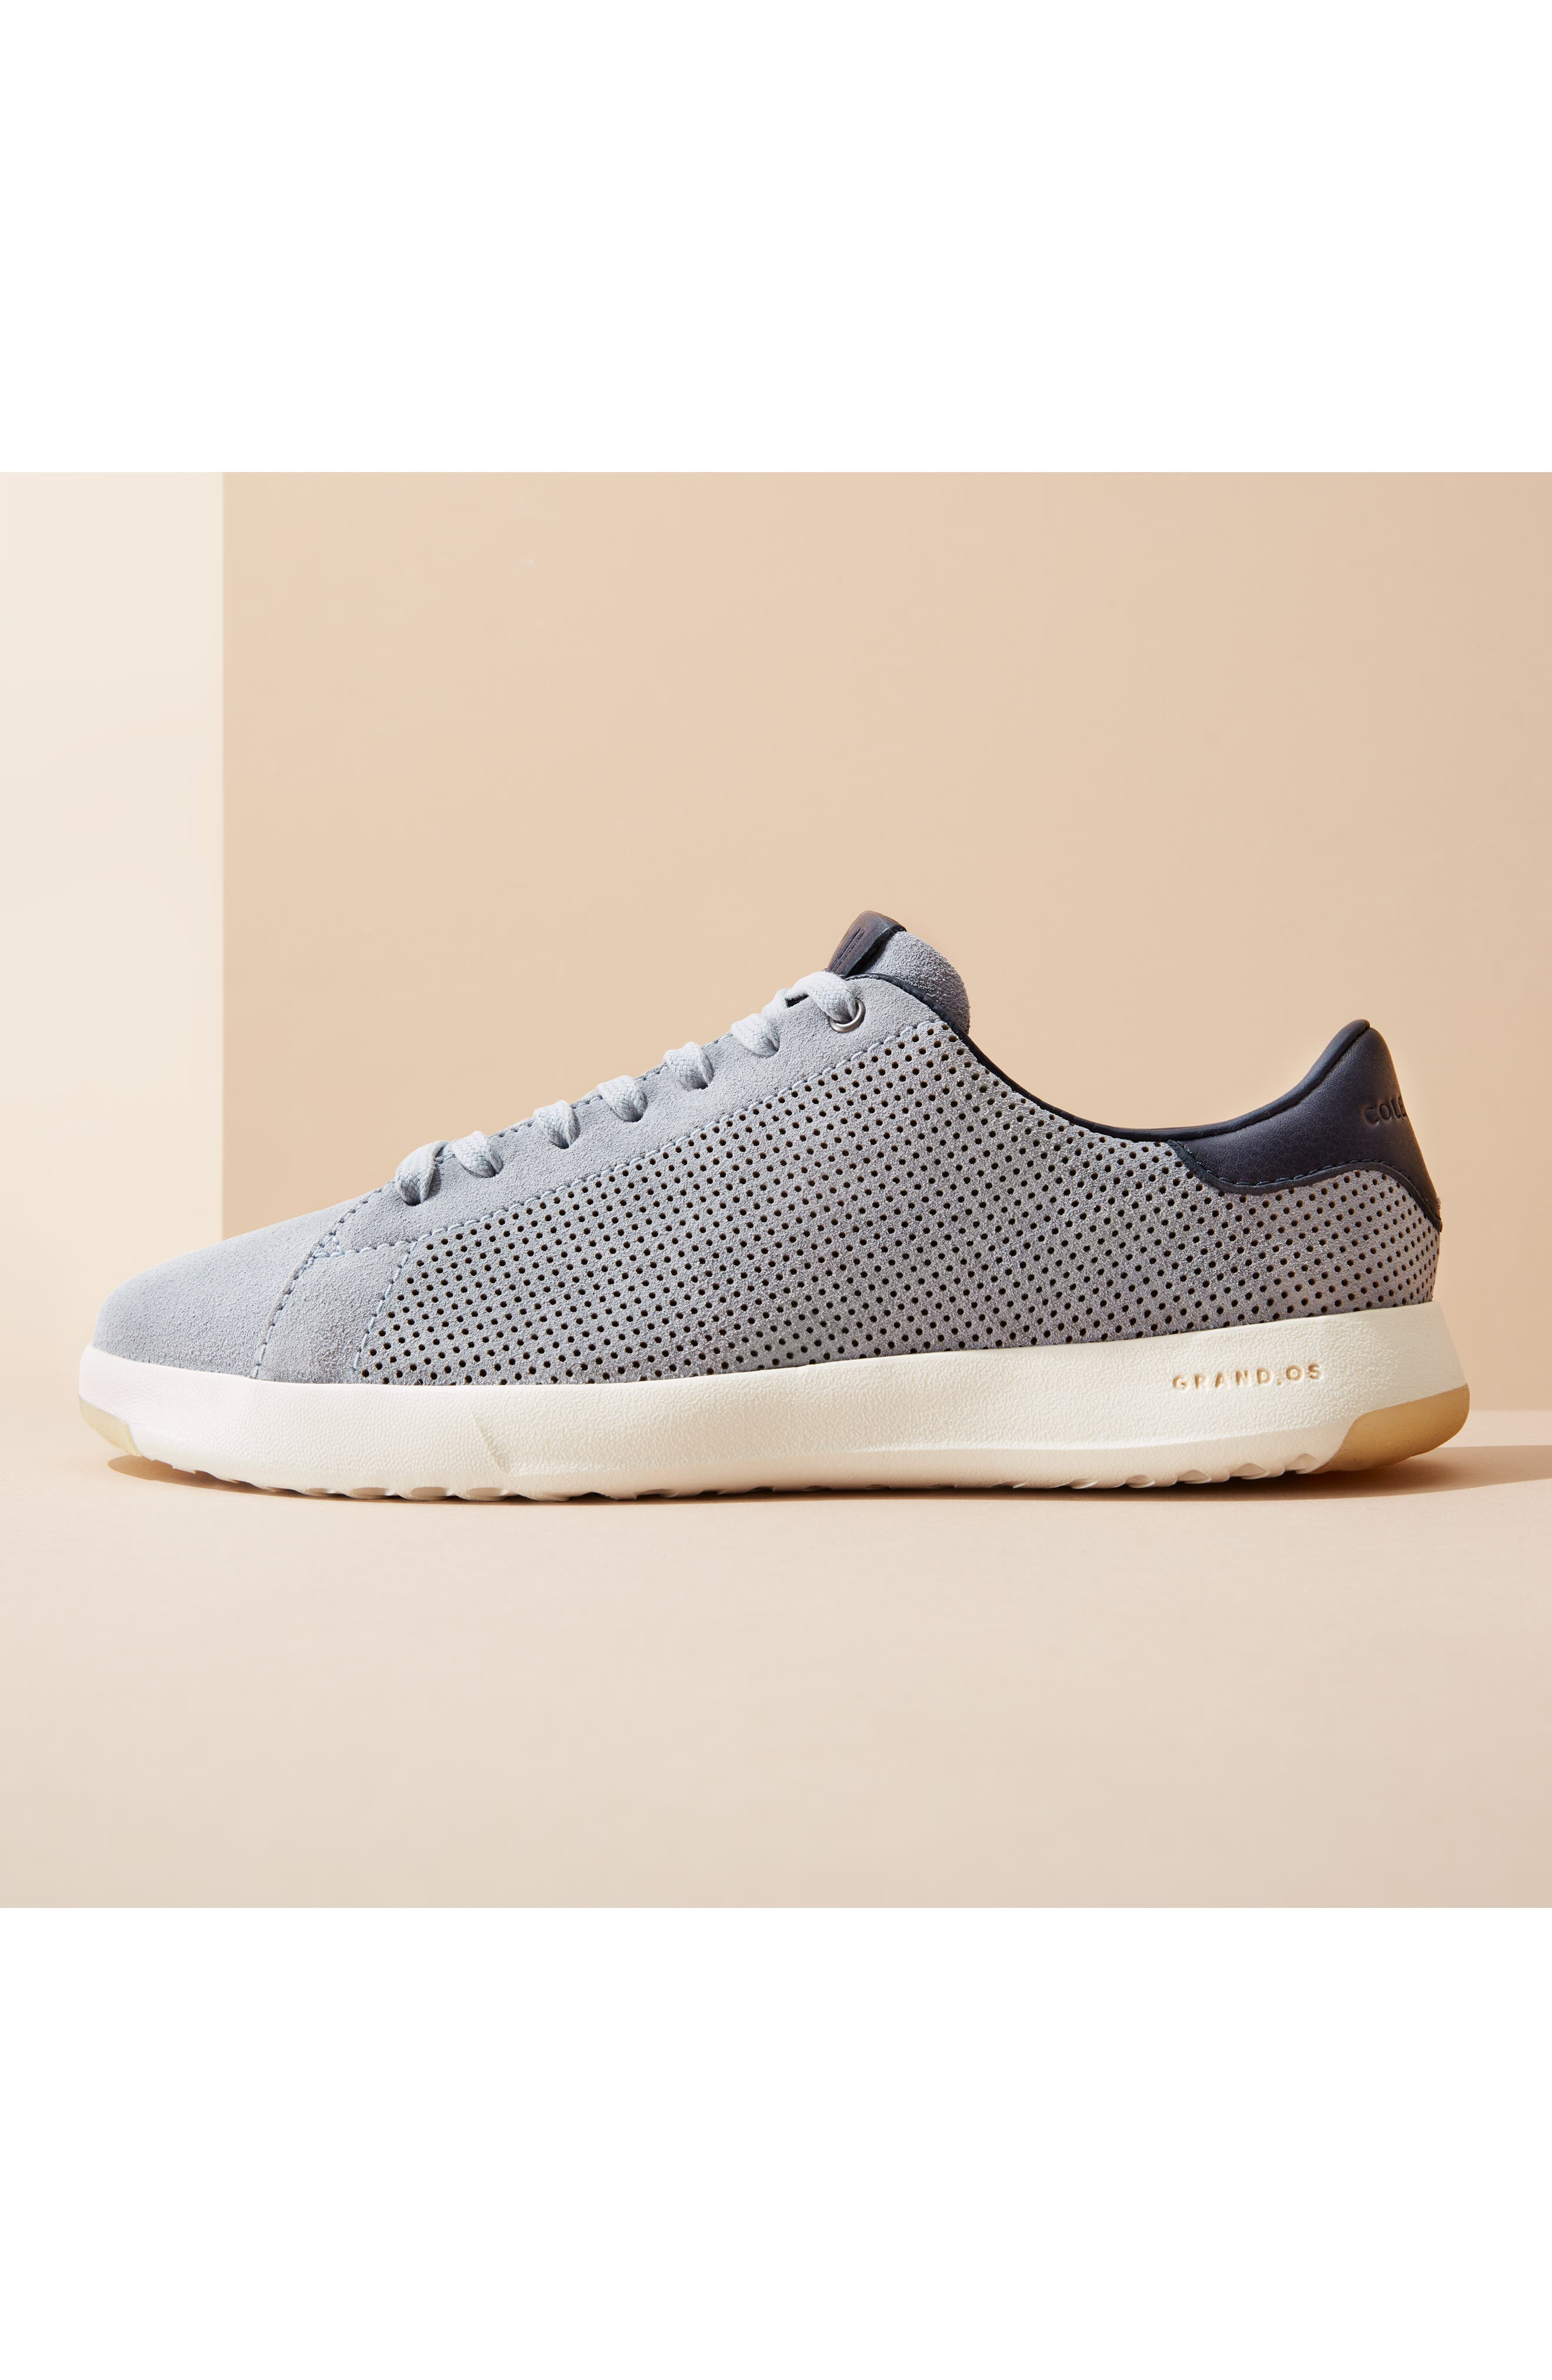 COLE HAAN, GrandPro Tennis Sneaker, Alternate thumbnail 12, color, GREY SUEDE